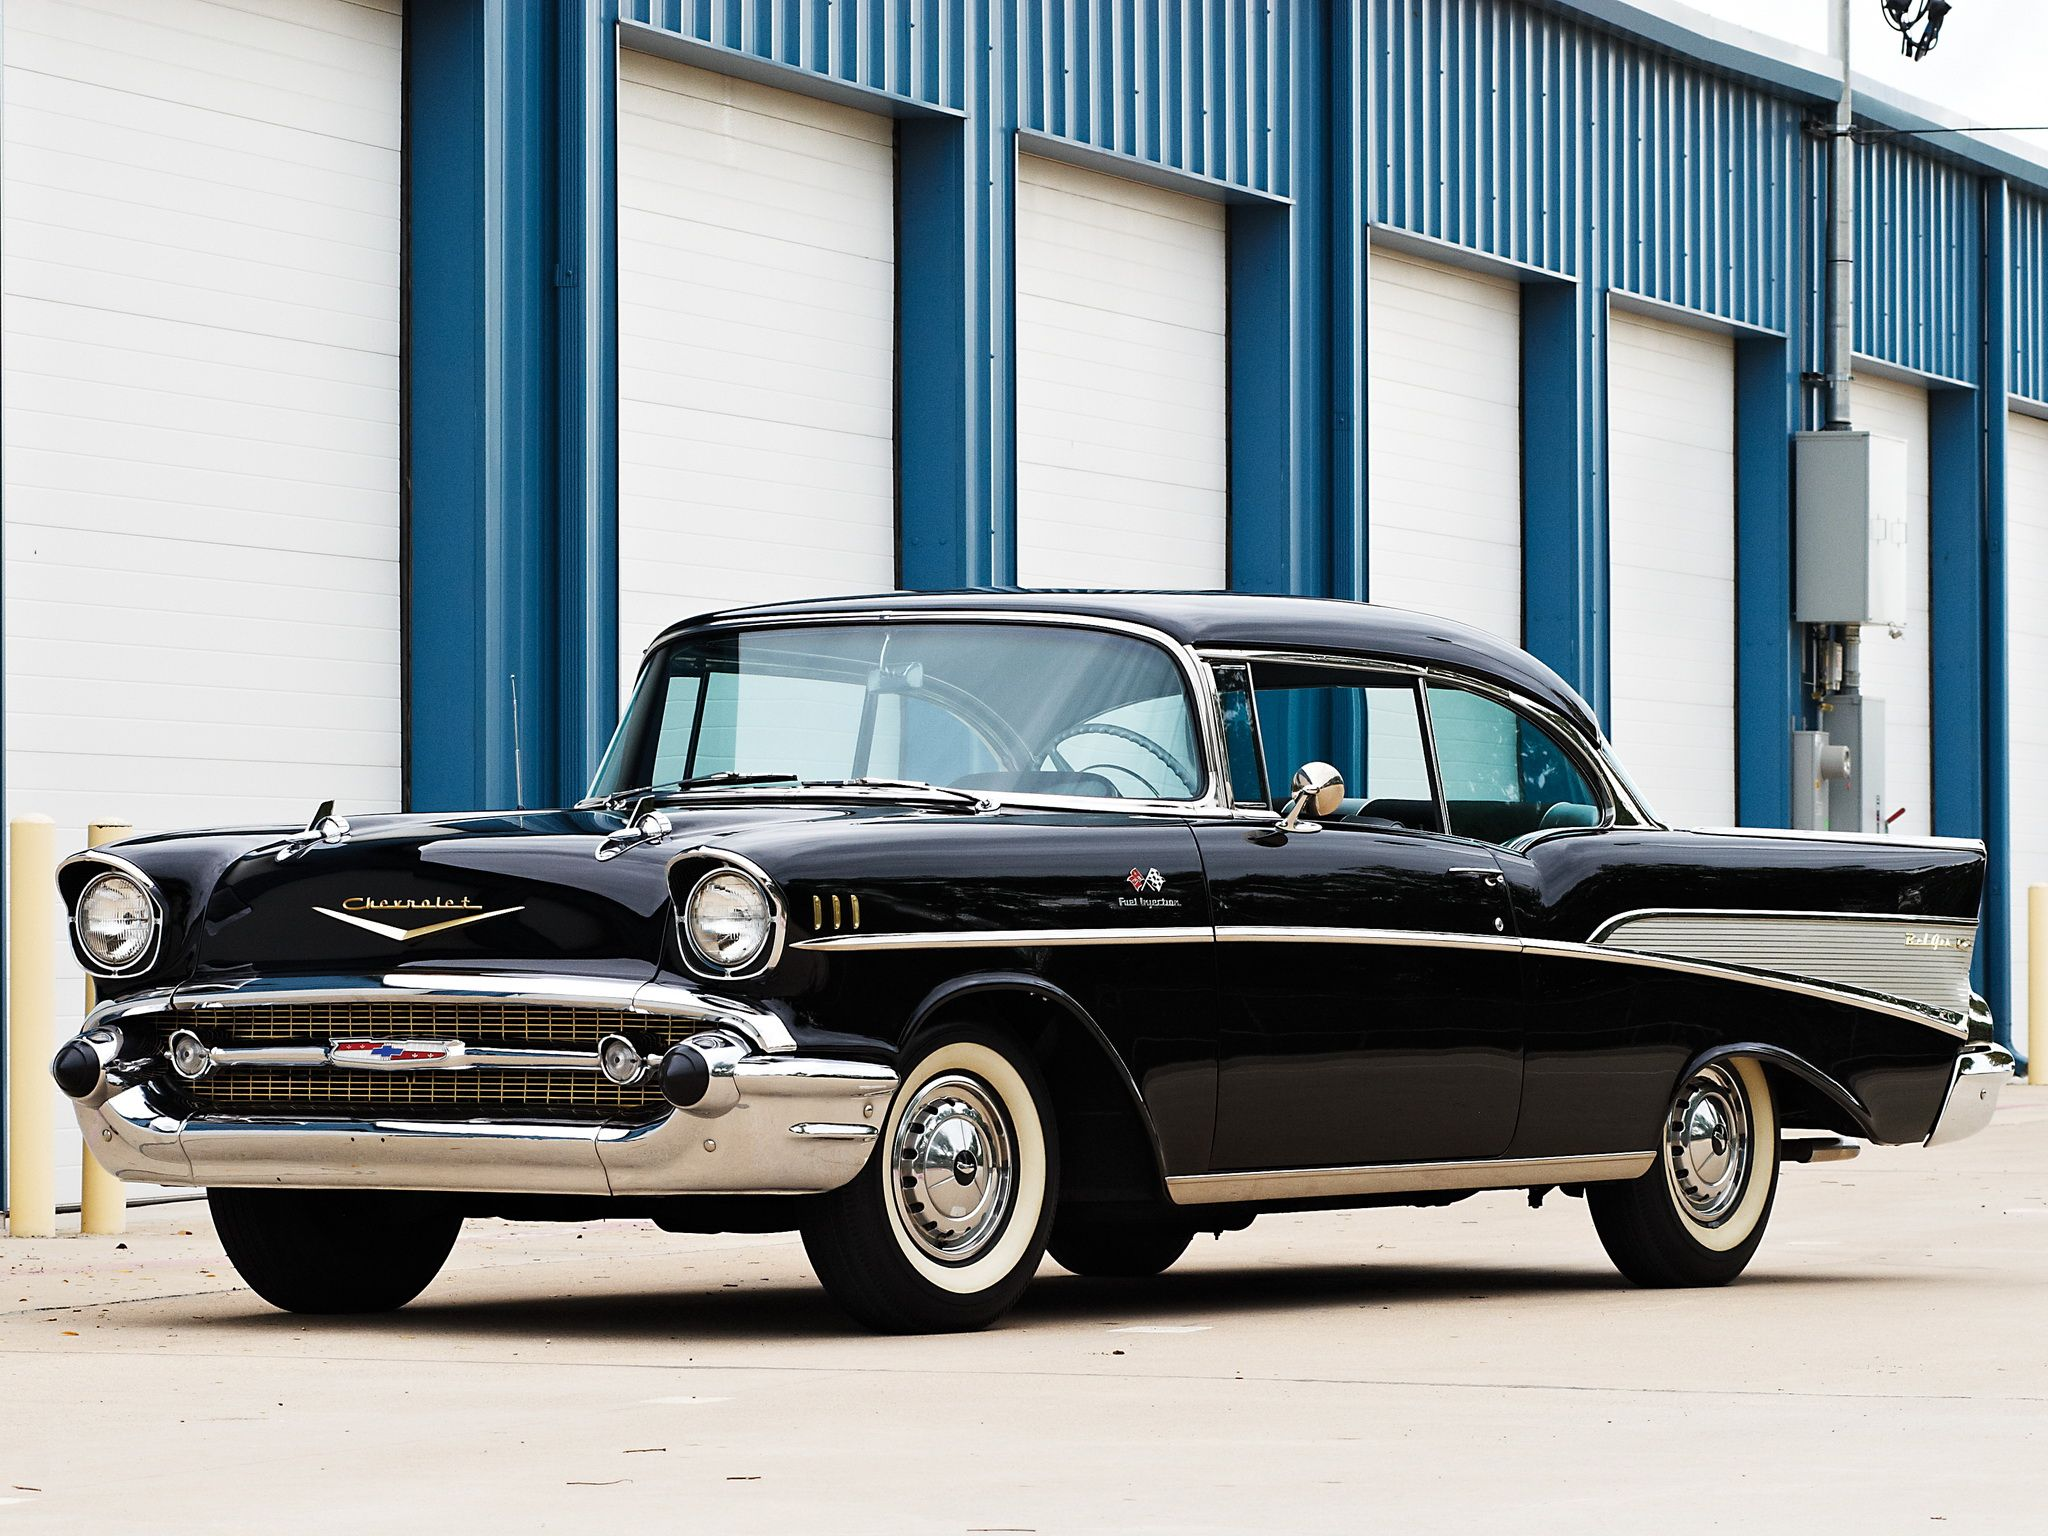 1957 Chevrolet Bel Air Fuel Injection Sport Coupe (2454-1037D) | Chevrolet bel  air, 1957 chevrolet, Chevrolet